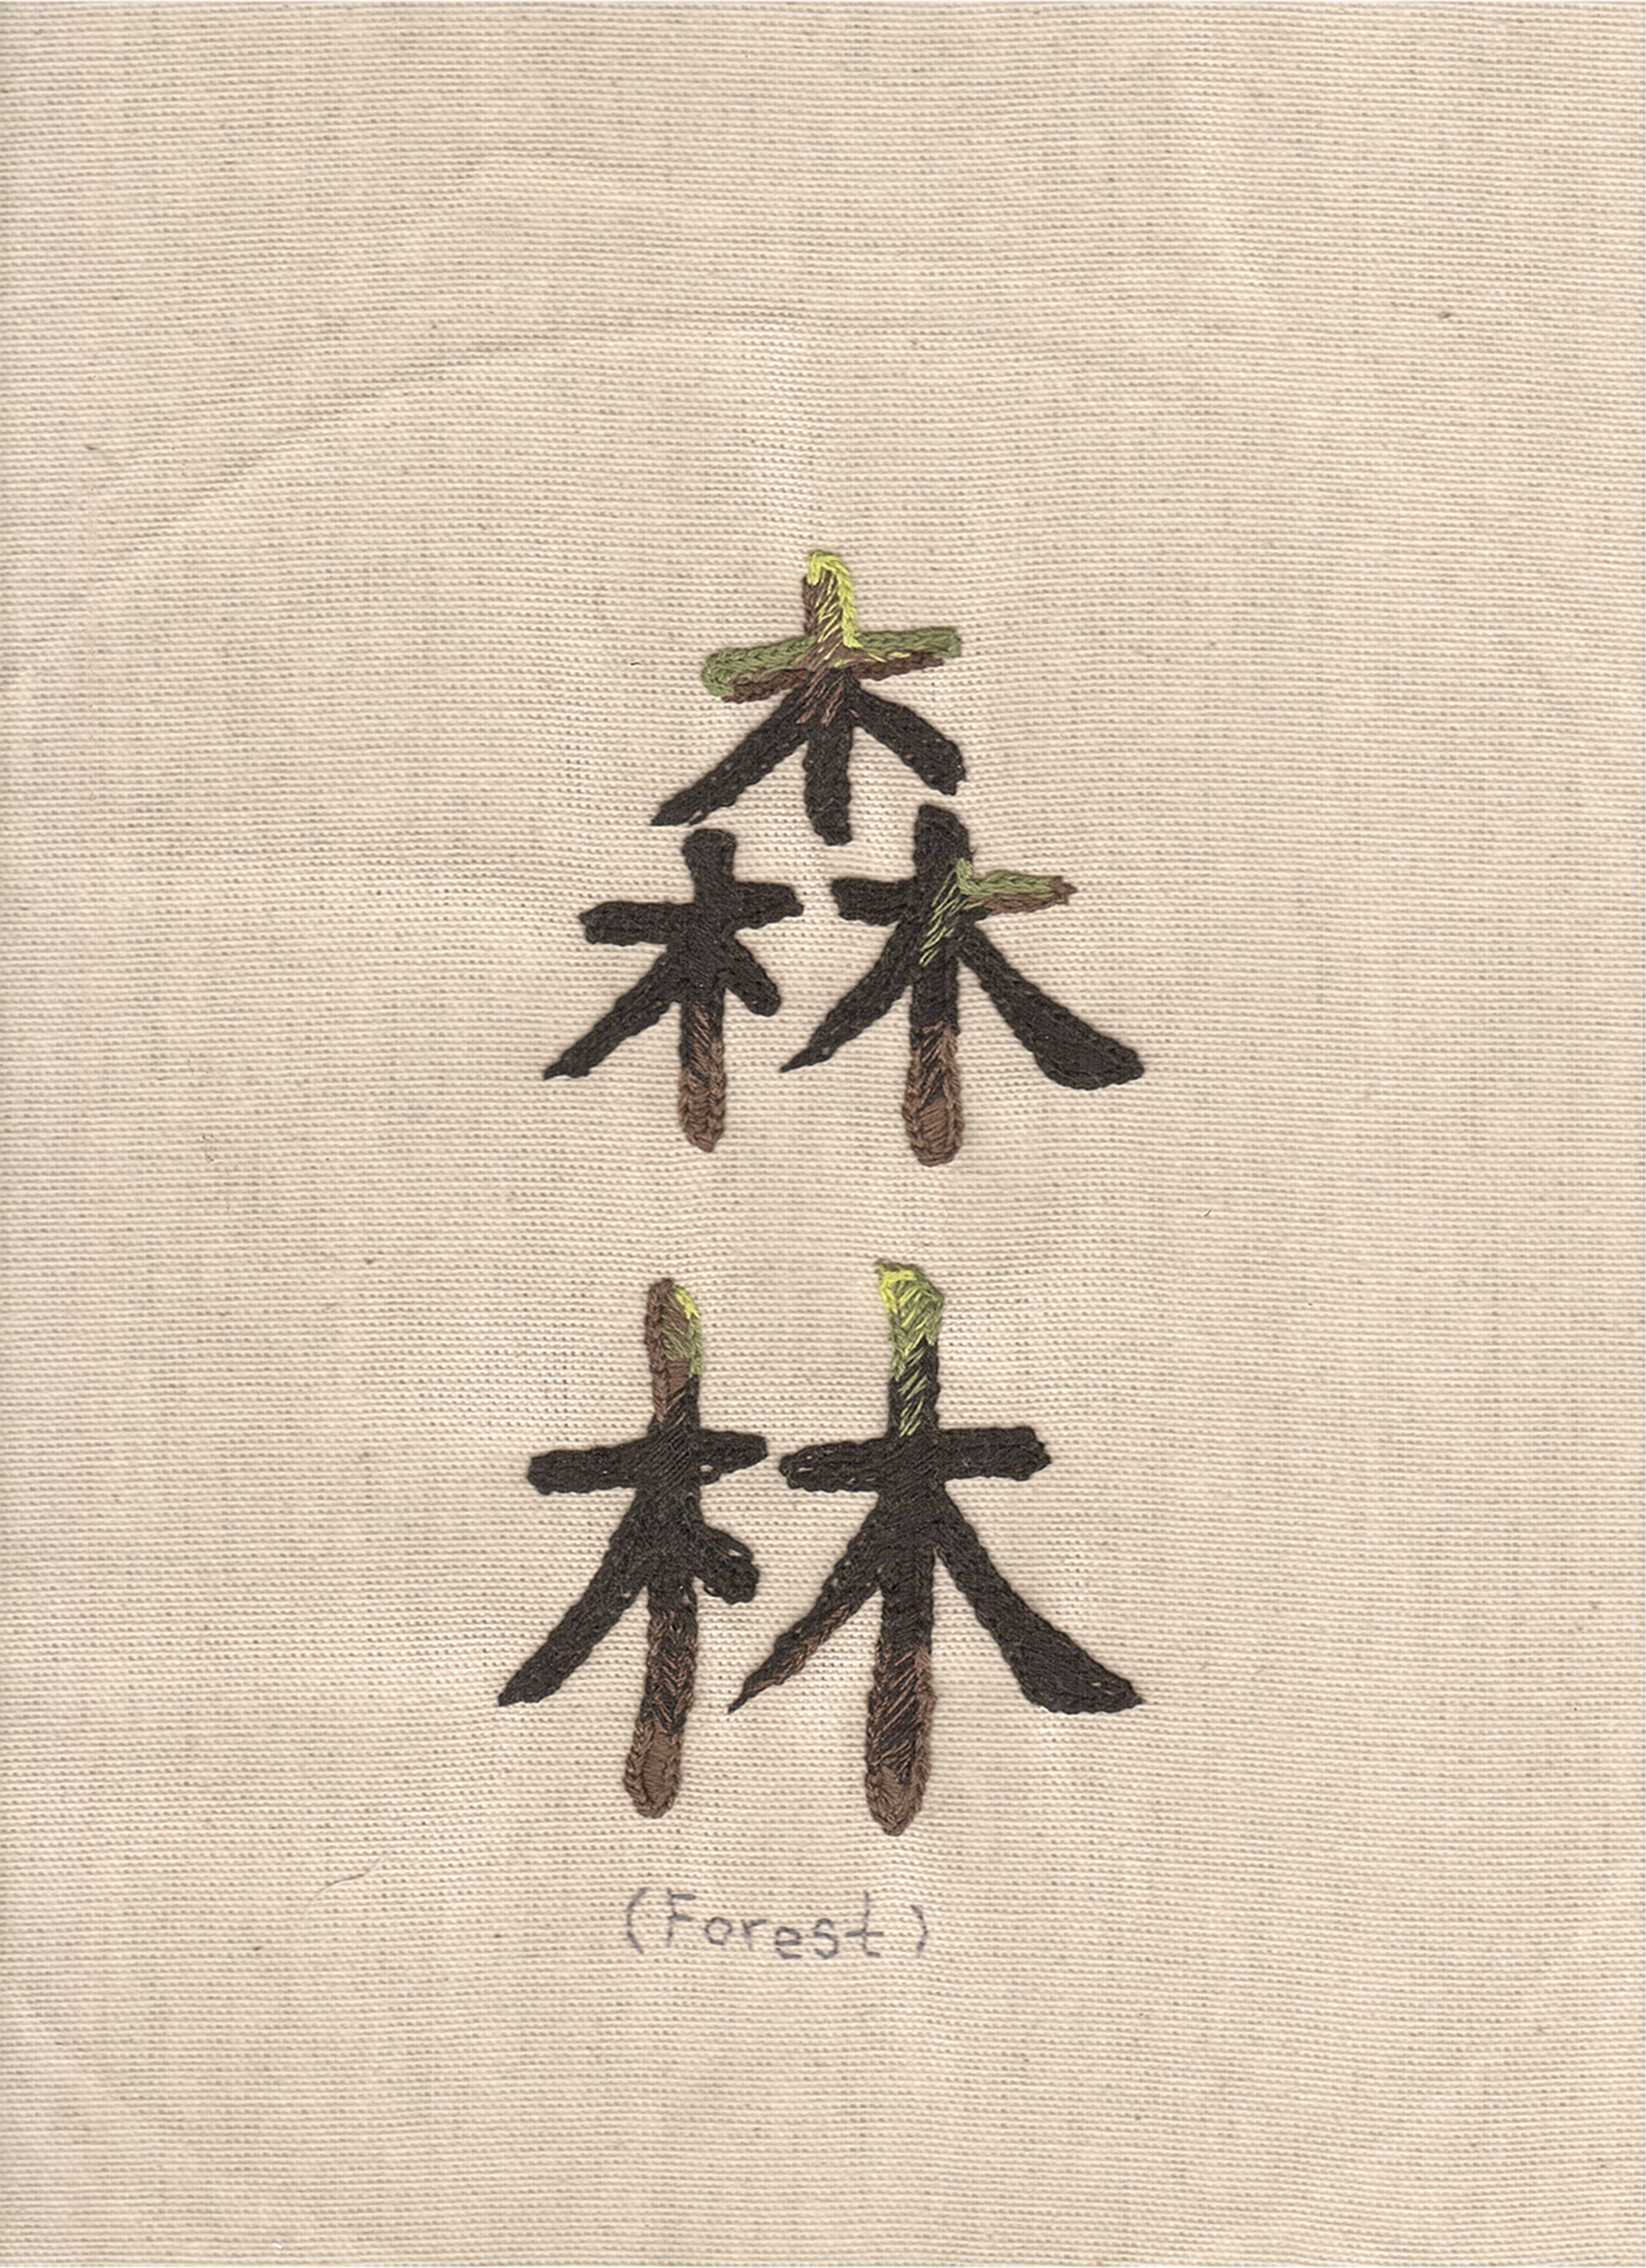 Forest Calligraphy - Chinese is evolve from symbols similar to pictionary.